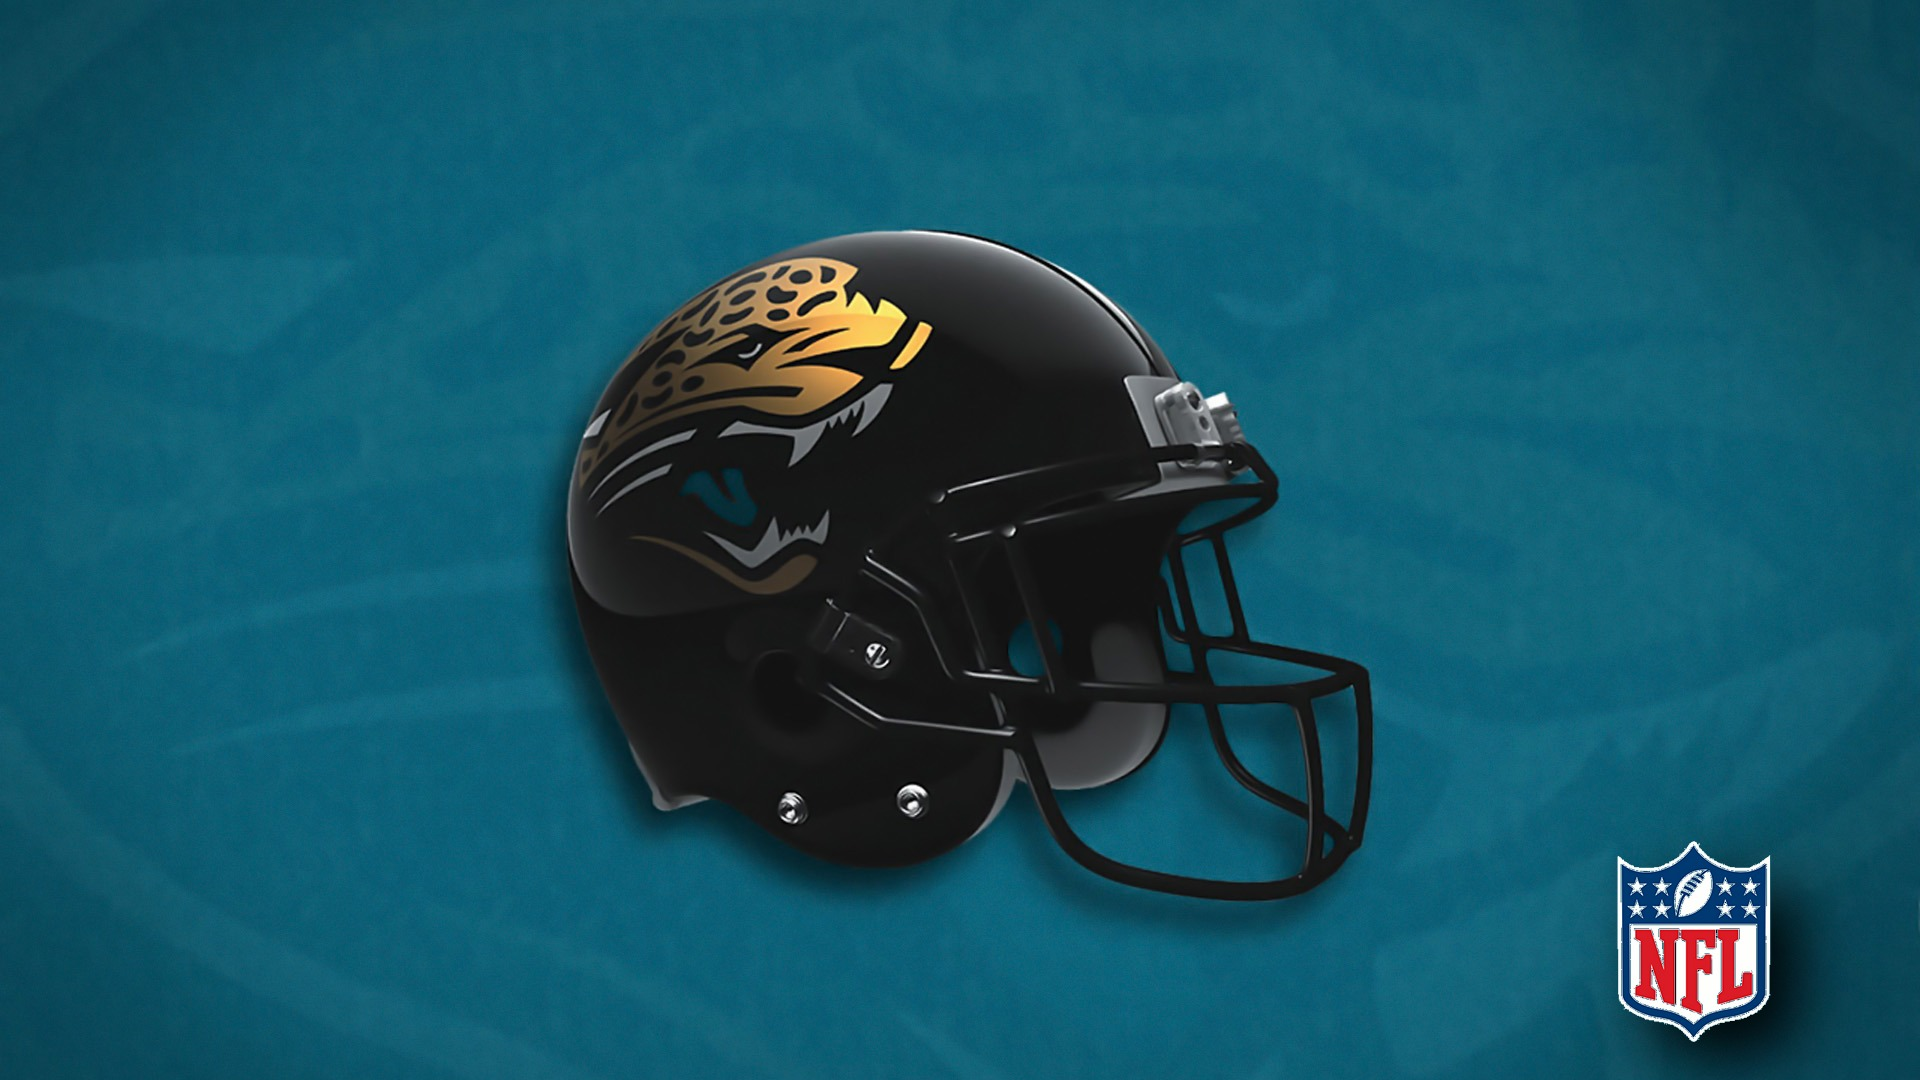 Hd Wallpapers Jacksonville Jaguars Logo 1800 X 1200 497 Kb Jpeg HD 1920x1080